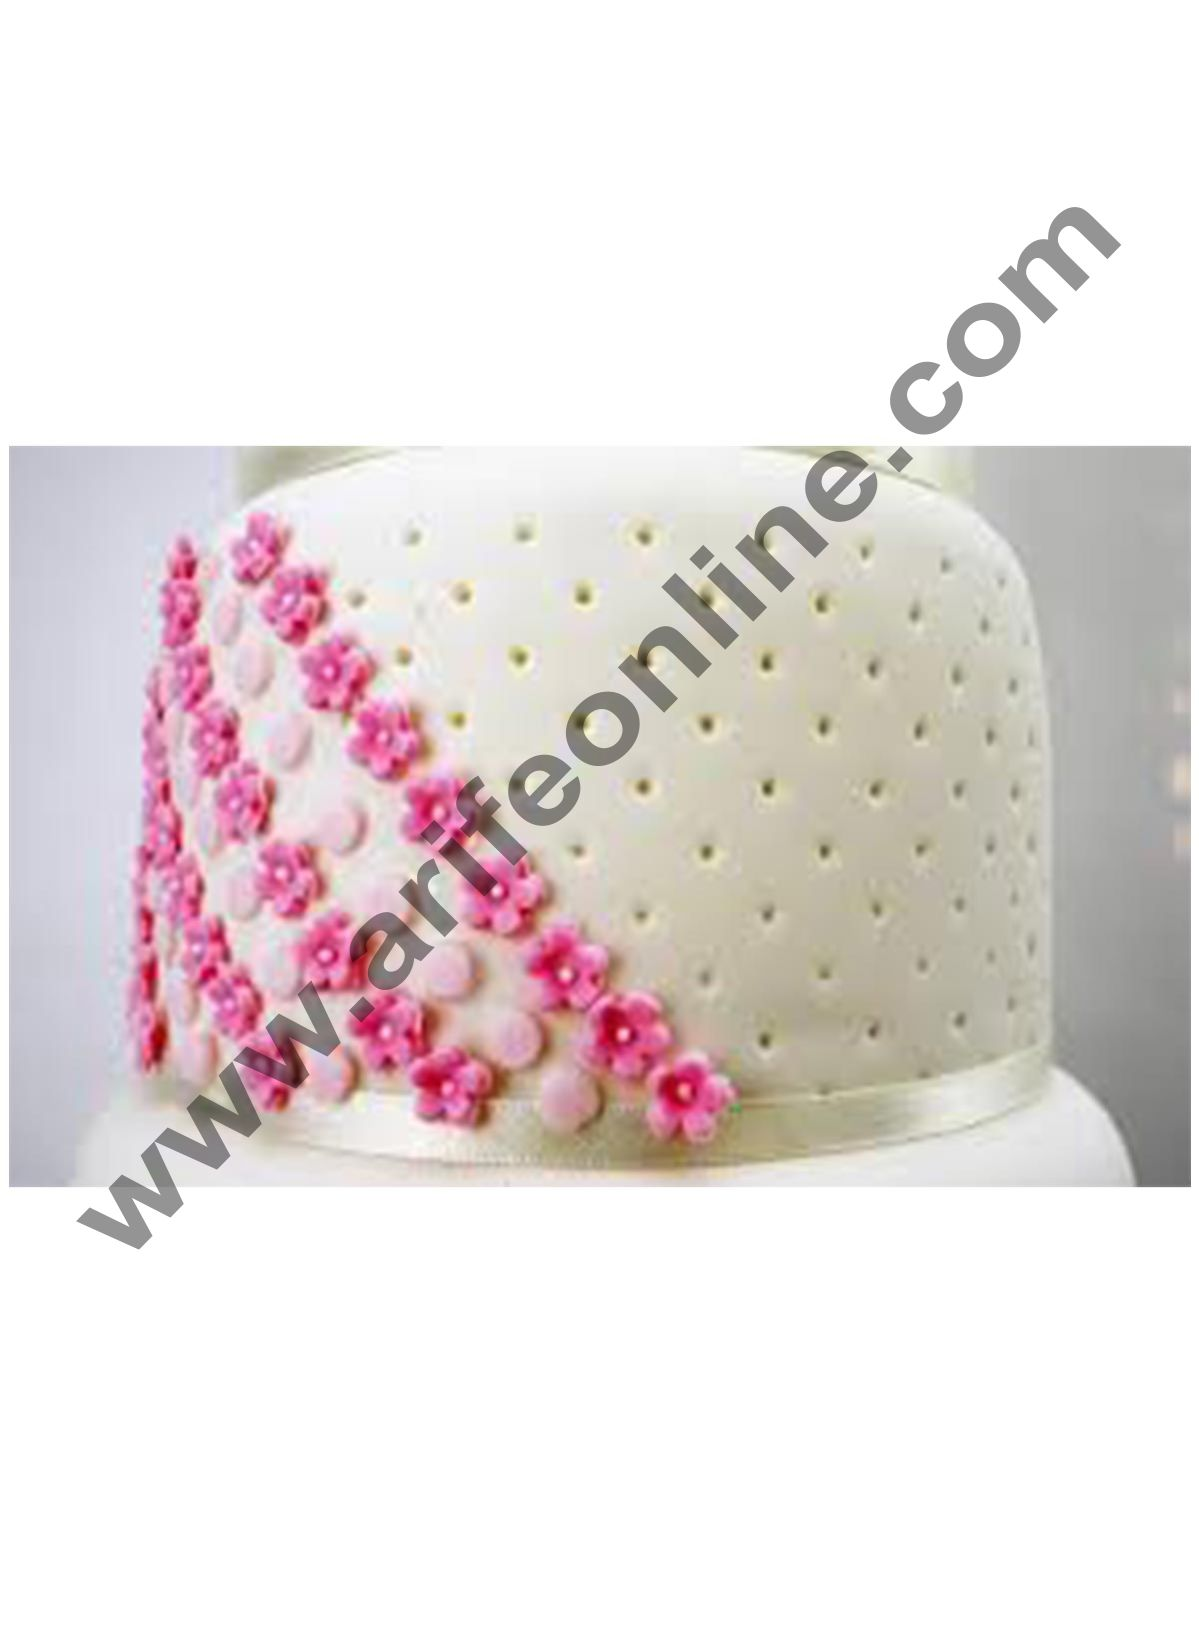 Cake Decor Press Ice Polka Dot Tool Sugar Craft Impression Tool